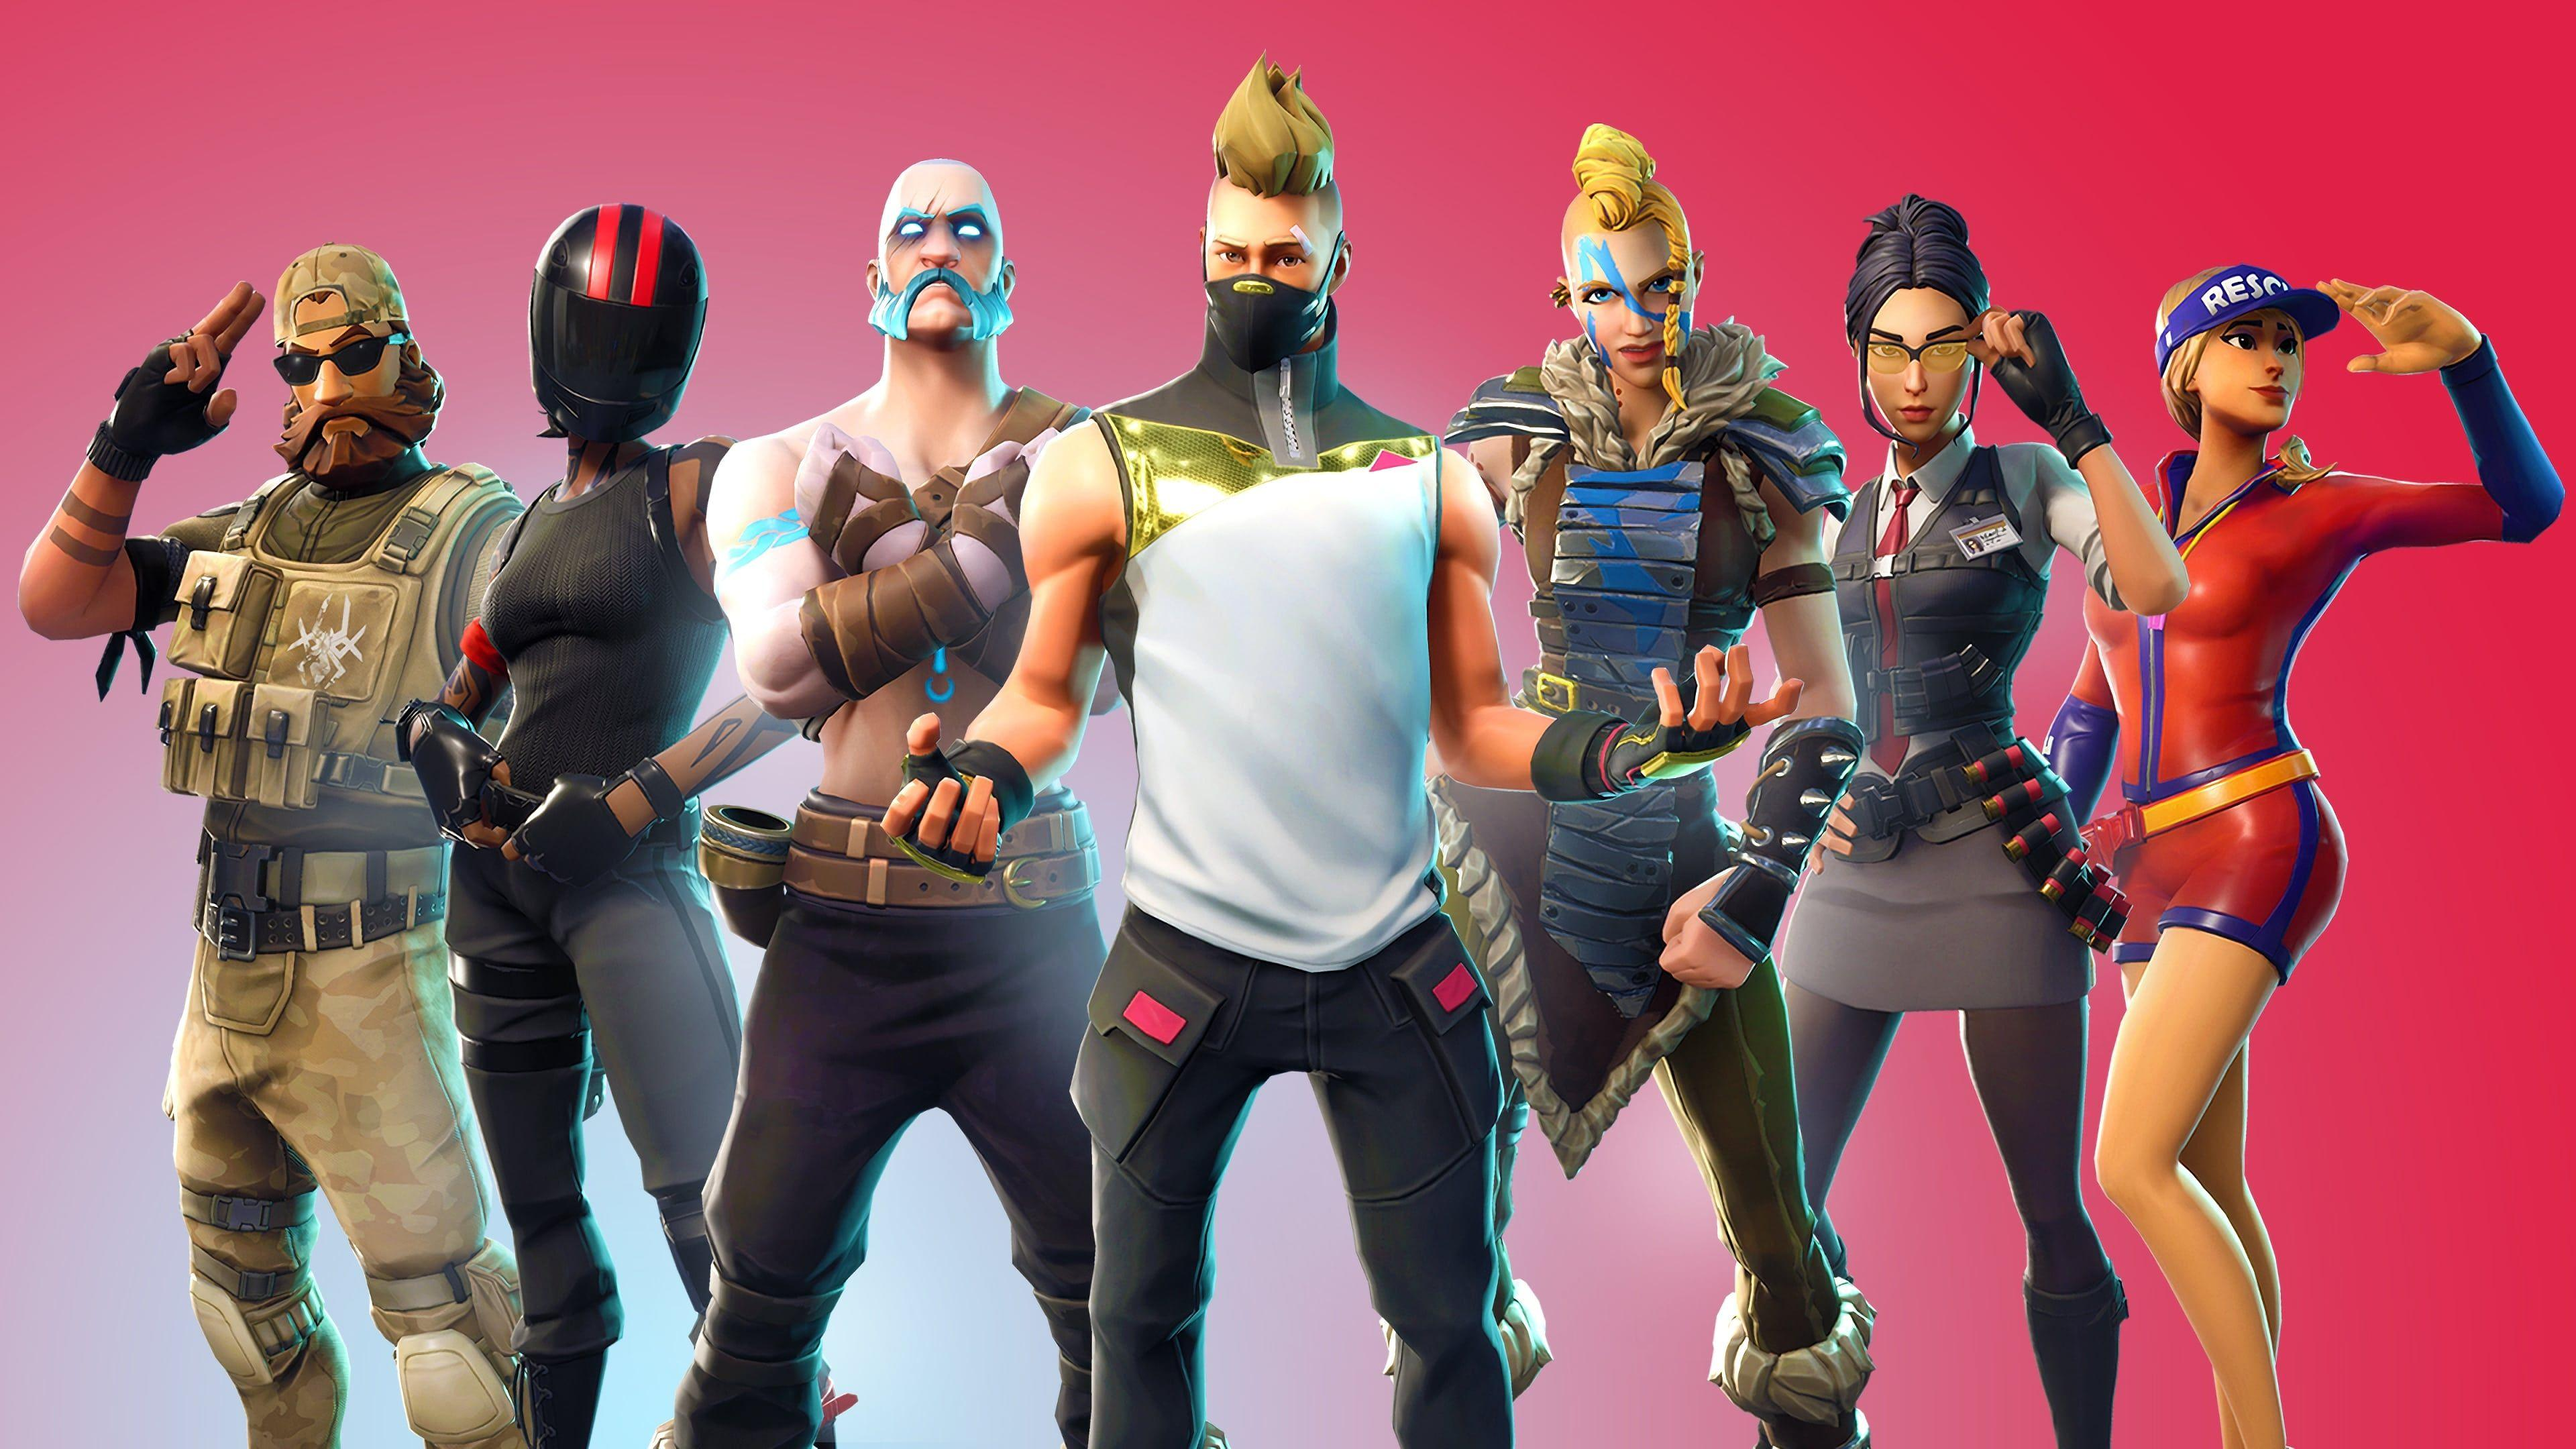 Fortnite Battle Pass Wallpapers Top Free Fortnite Battle Pass Backgrounds Wallpaperaccess